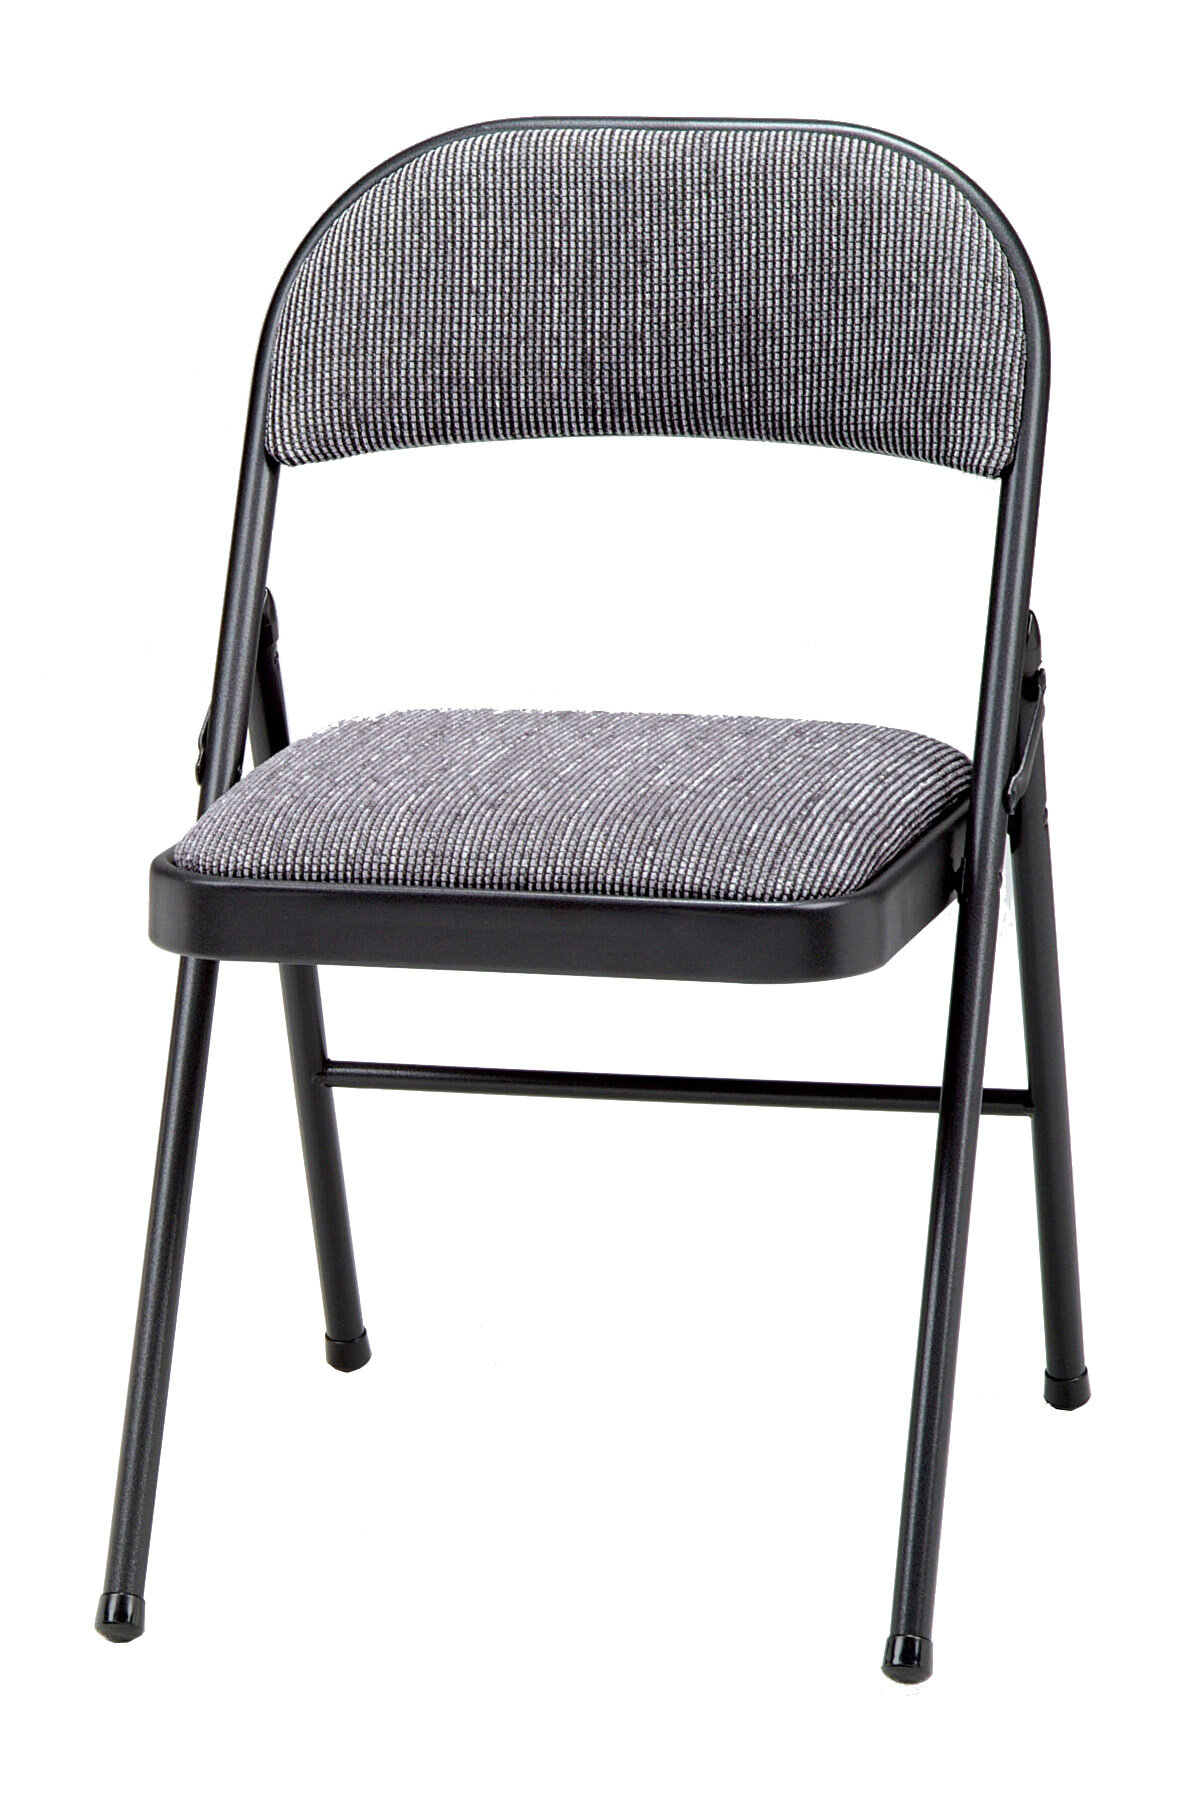 Super Meco Deluxe Fabric Padded Folding Chair Reviews Wayfair Dailytribune Chair Design For Home Dailytribuneorg